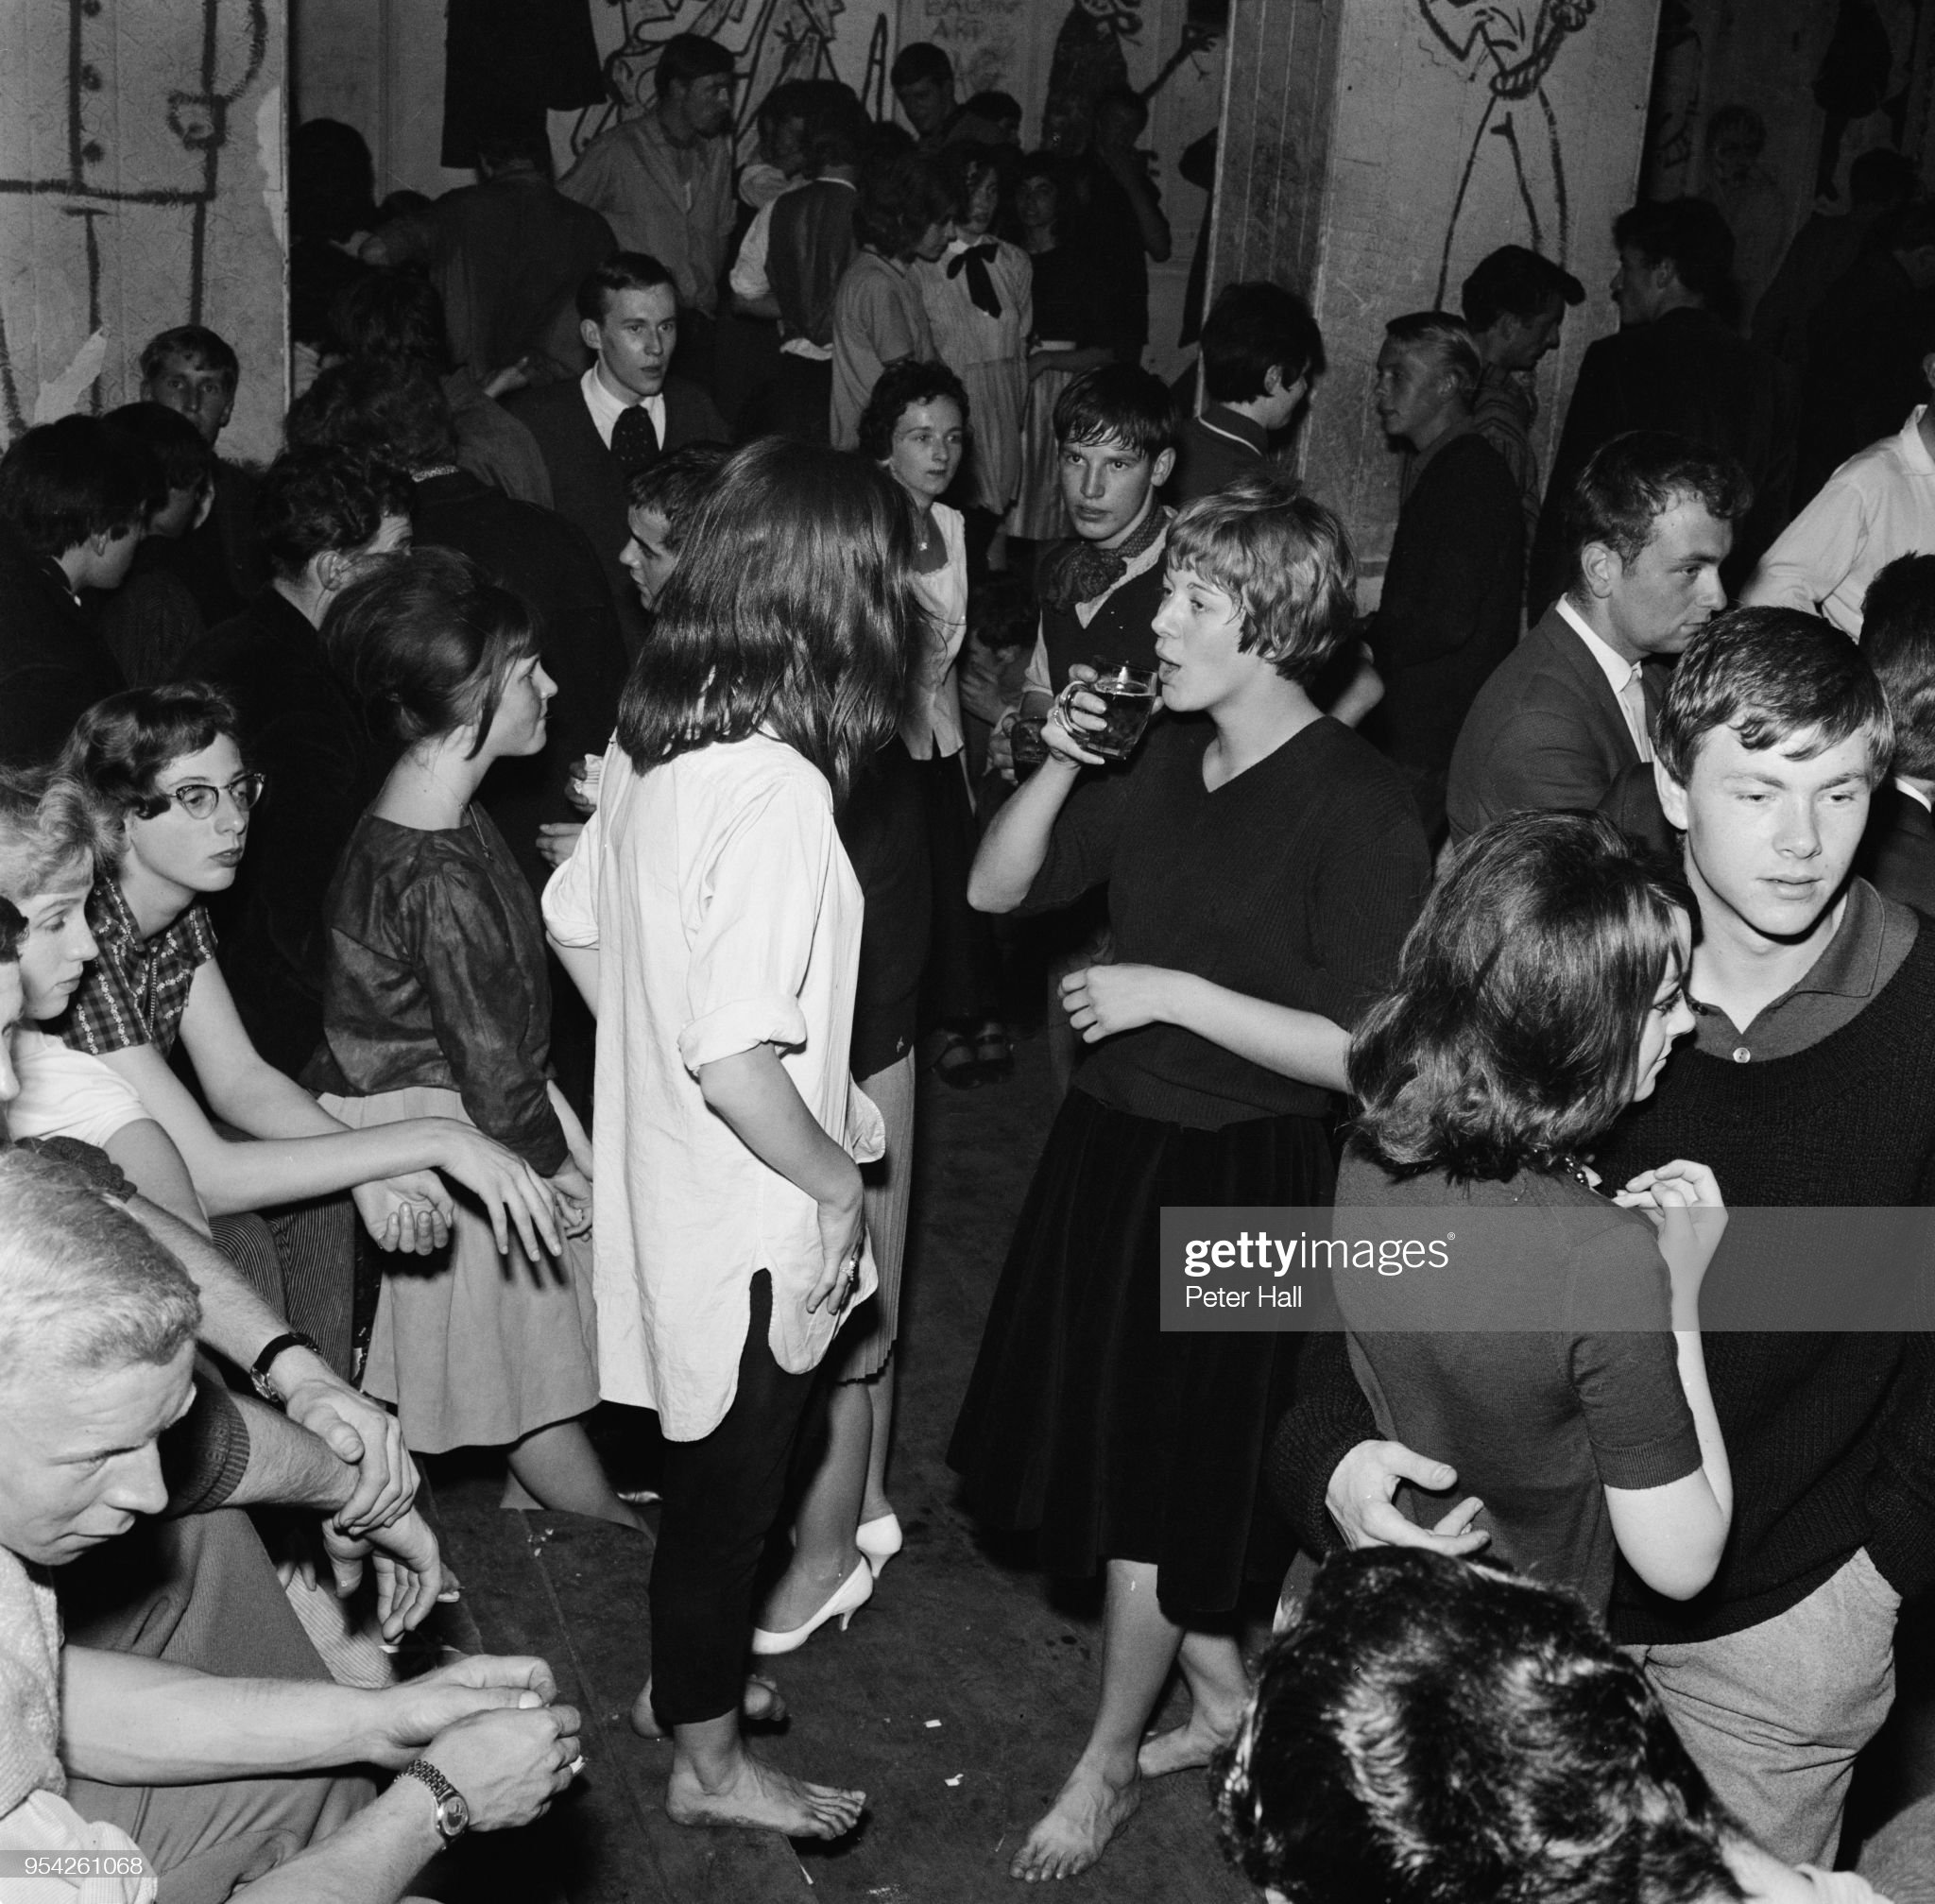 https://media.gettyimages.com/photos/teenagers-at-a-sunday-night-rave-at-a-jazz-club-at-the-eel-pie-island-picture-id954261068?s=2048x2048